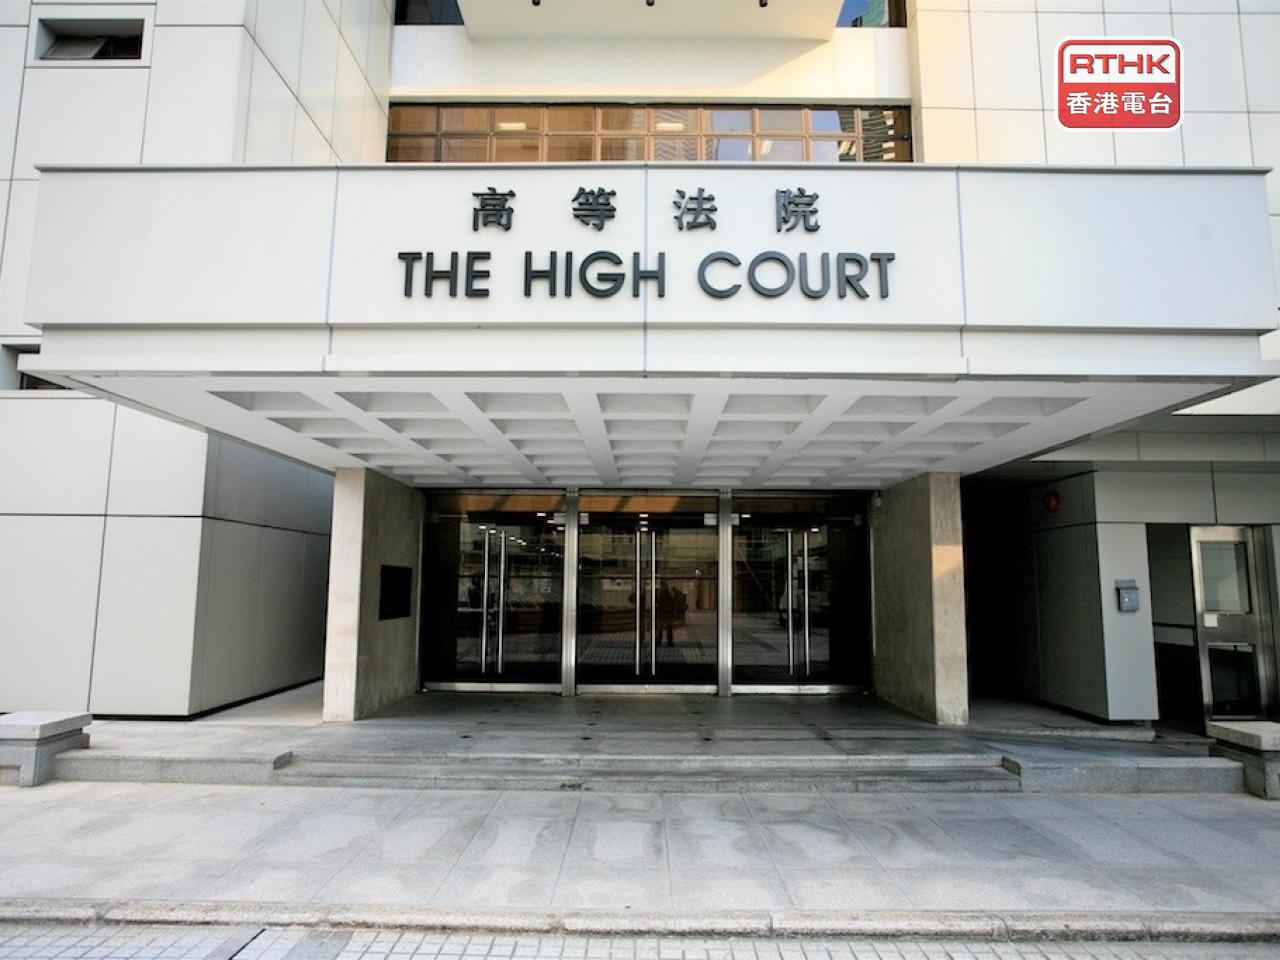 In a statement issued late on Tuesday, the department did not give any more detail about the alleged threats. Photo: RTHK